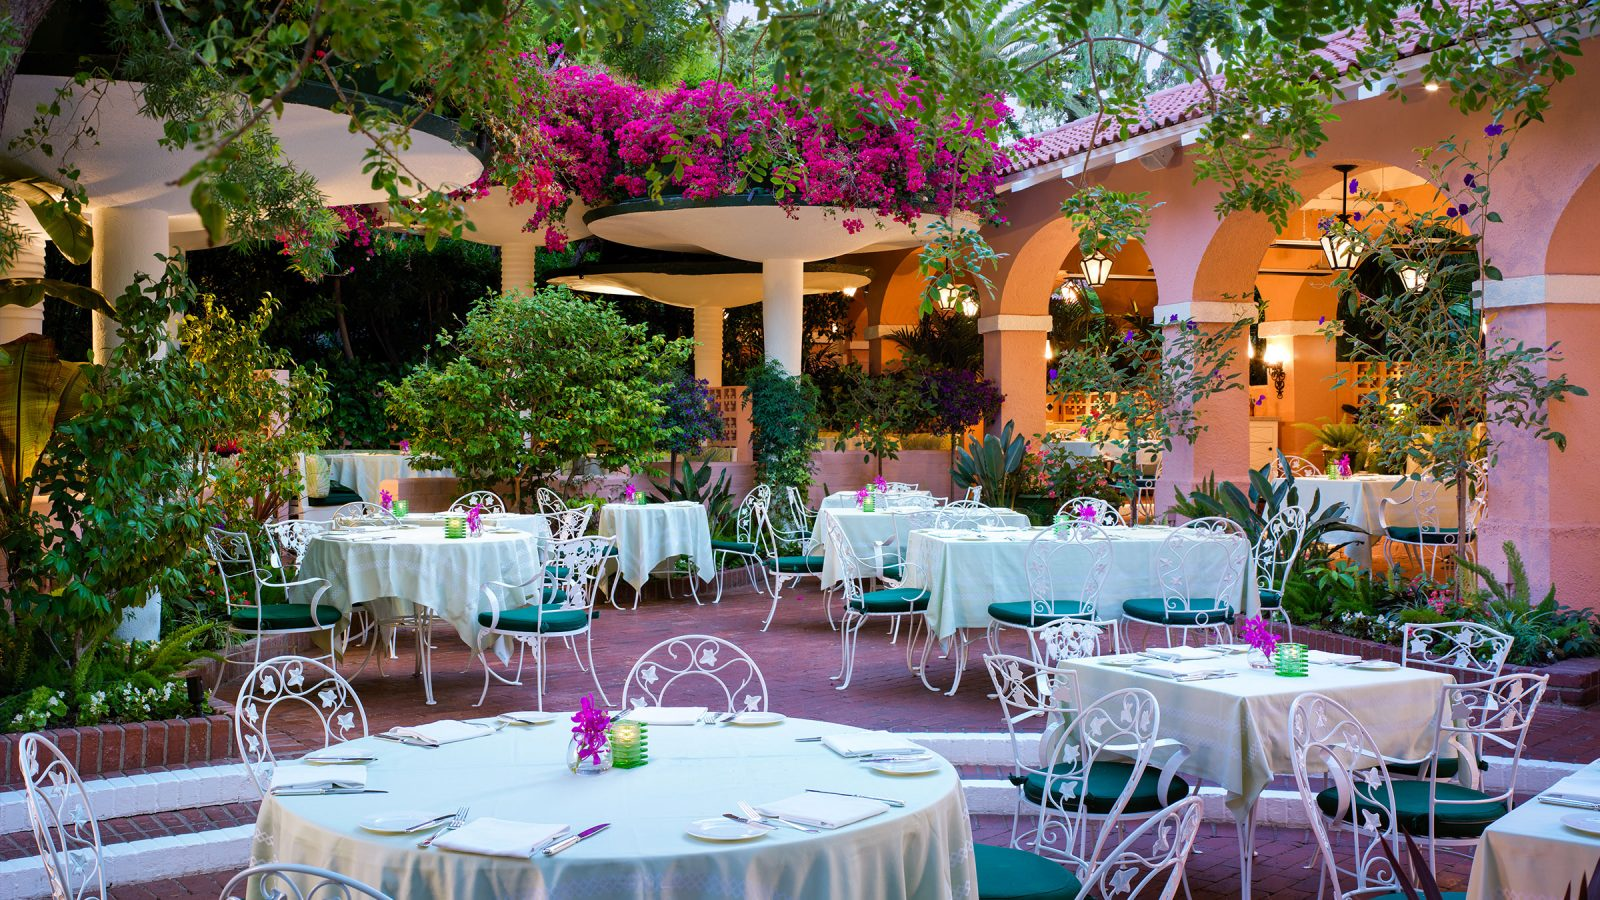 beverly-hills-hotel-polo-lounge-patio-landscape-1600x900.jpg